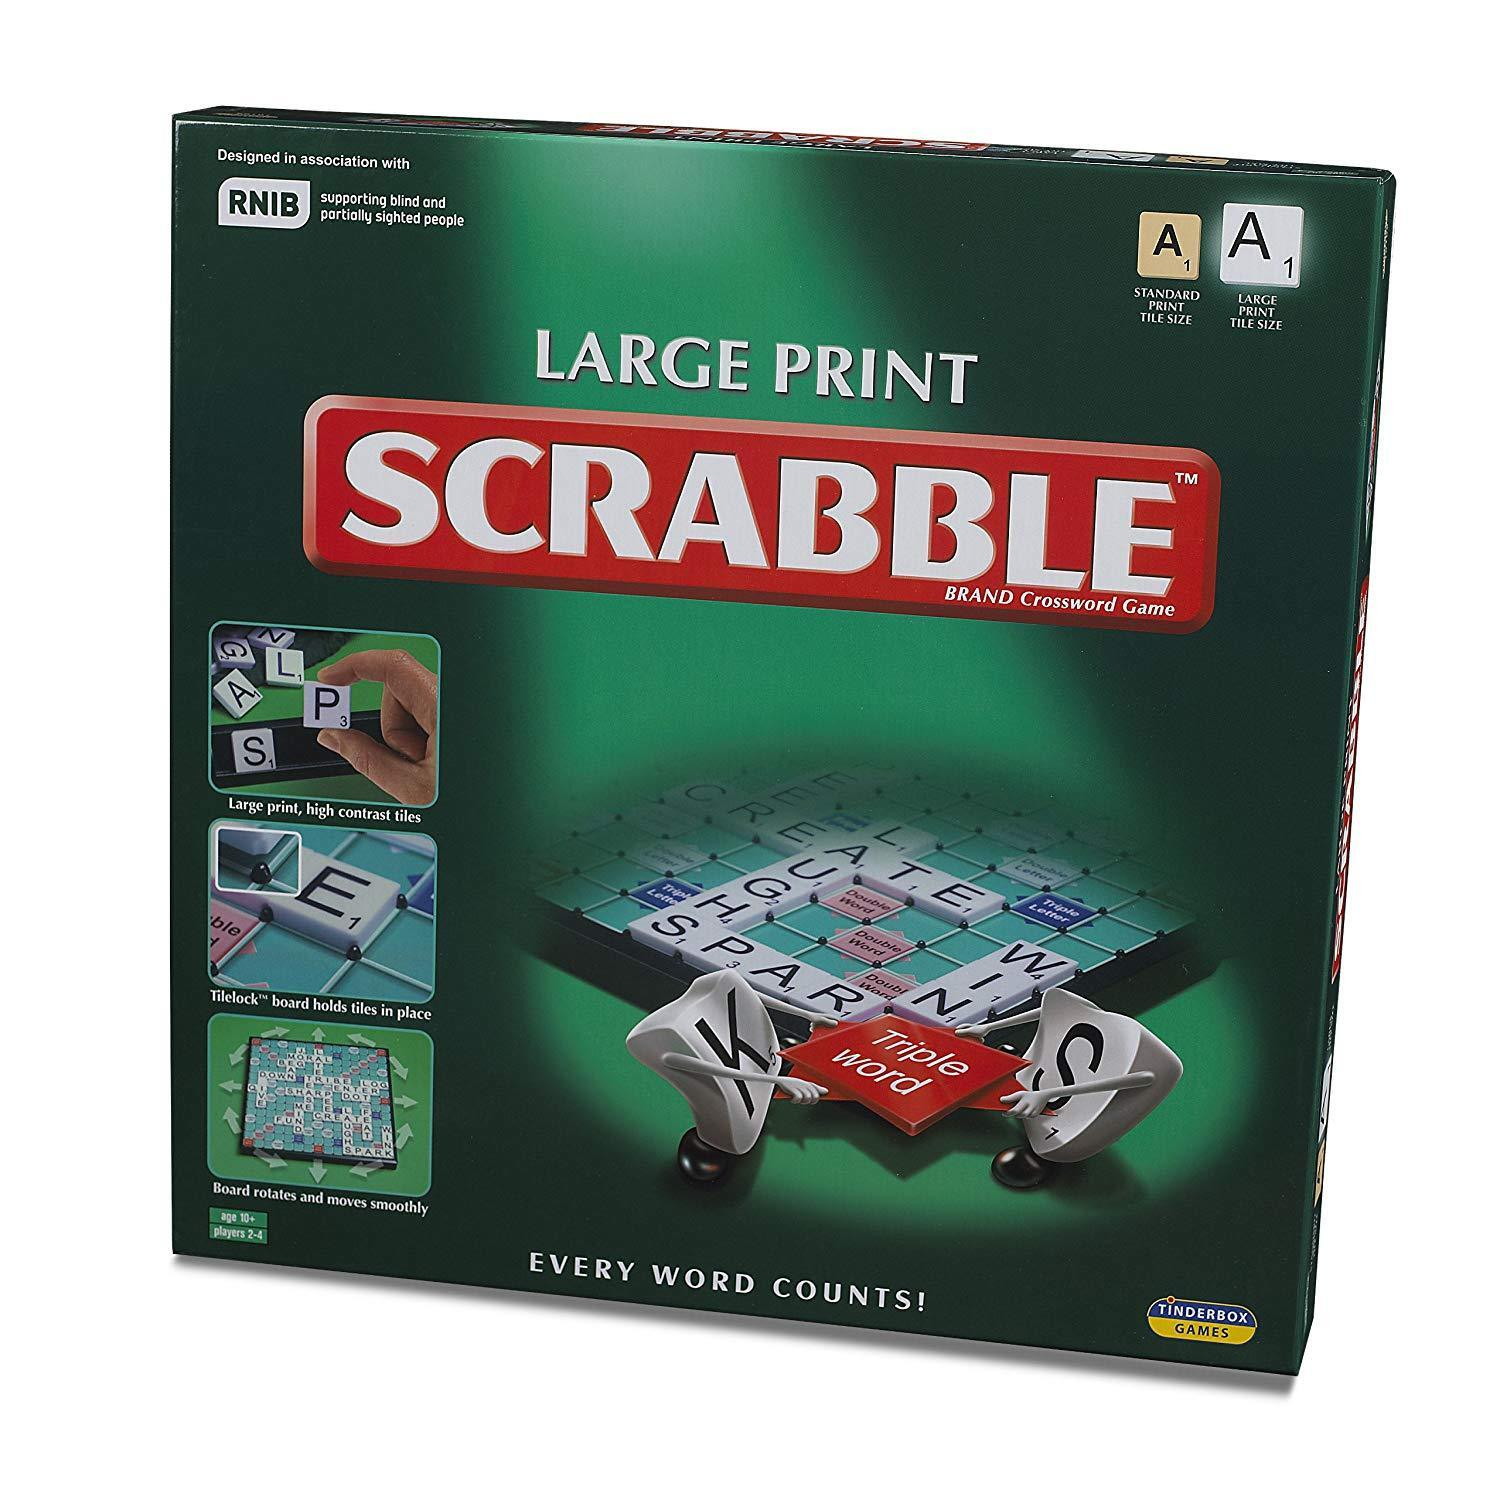 NEW Tinderbox Games LTL10108 Scrabble Large Print Every Word Coun CHRISTMAS GIFT